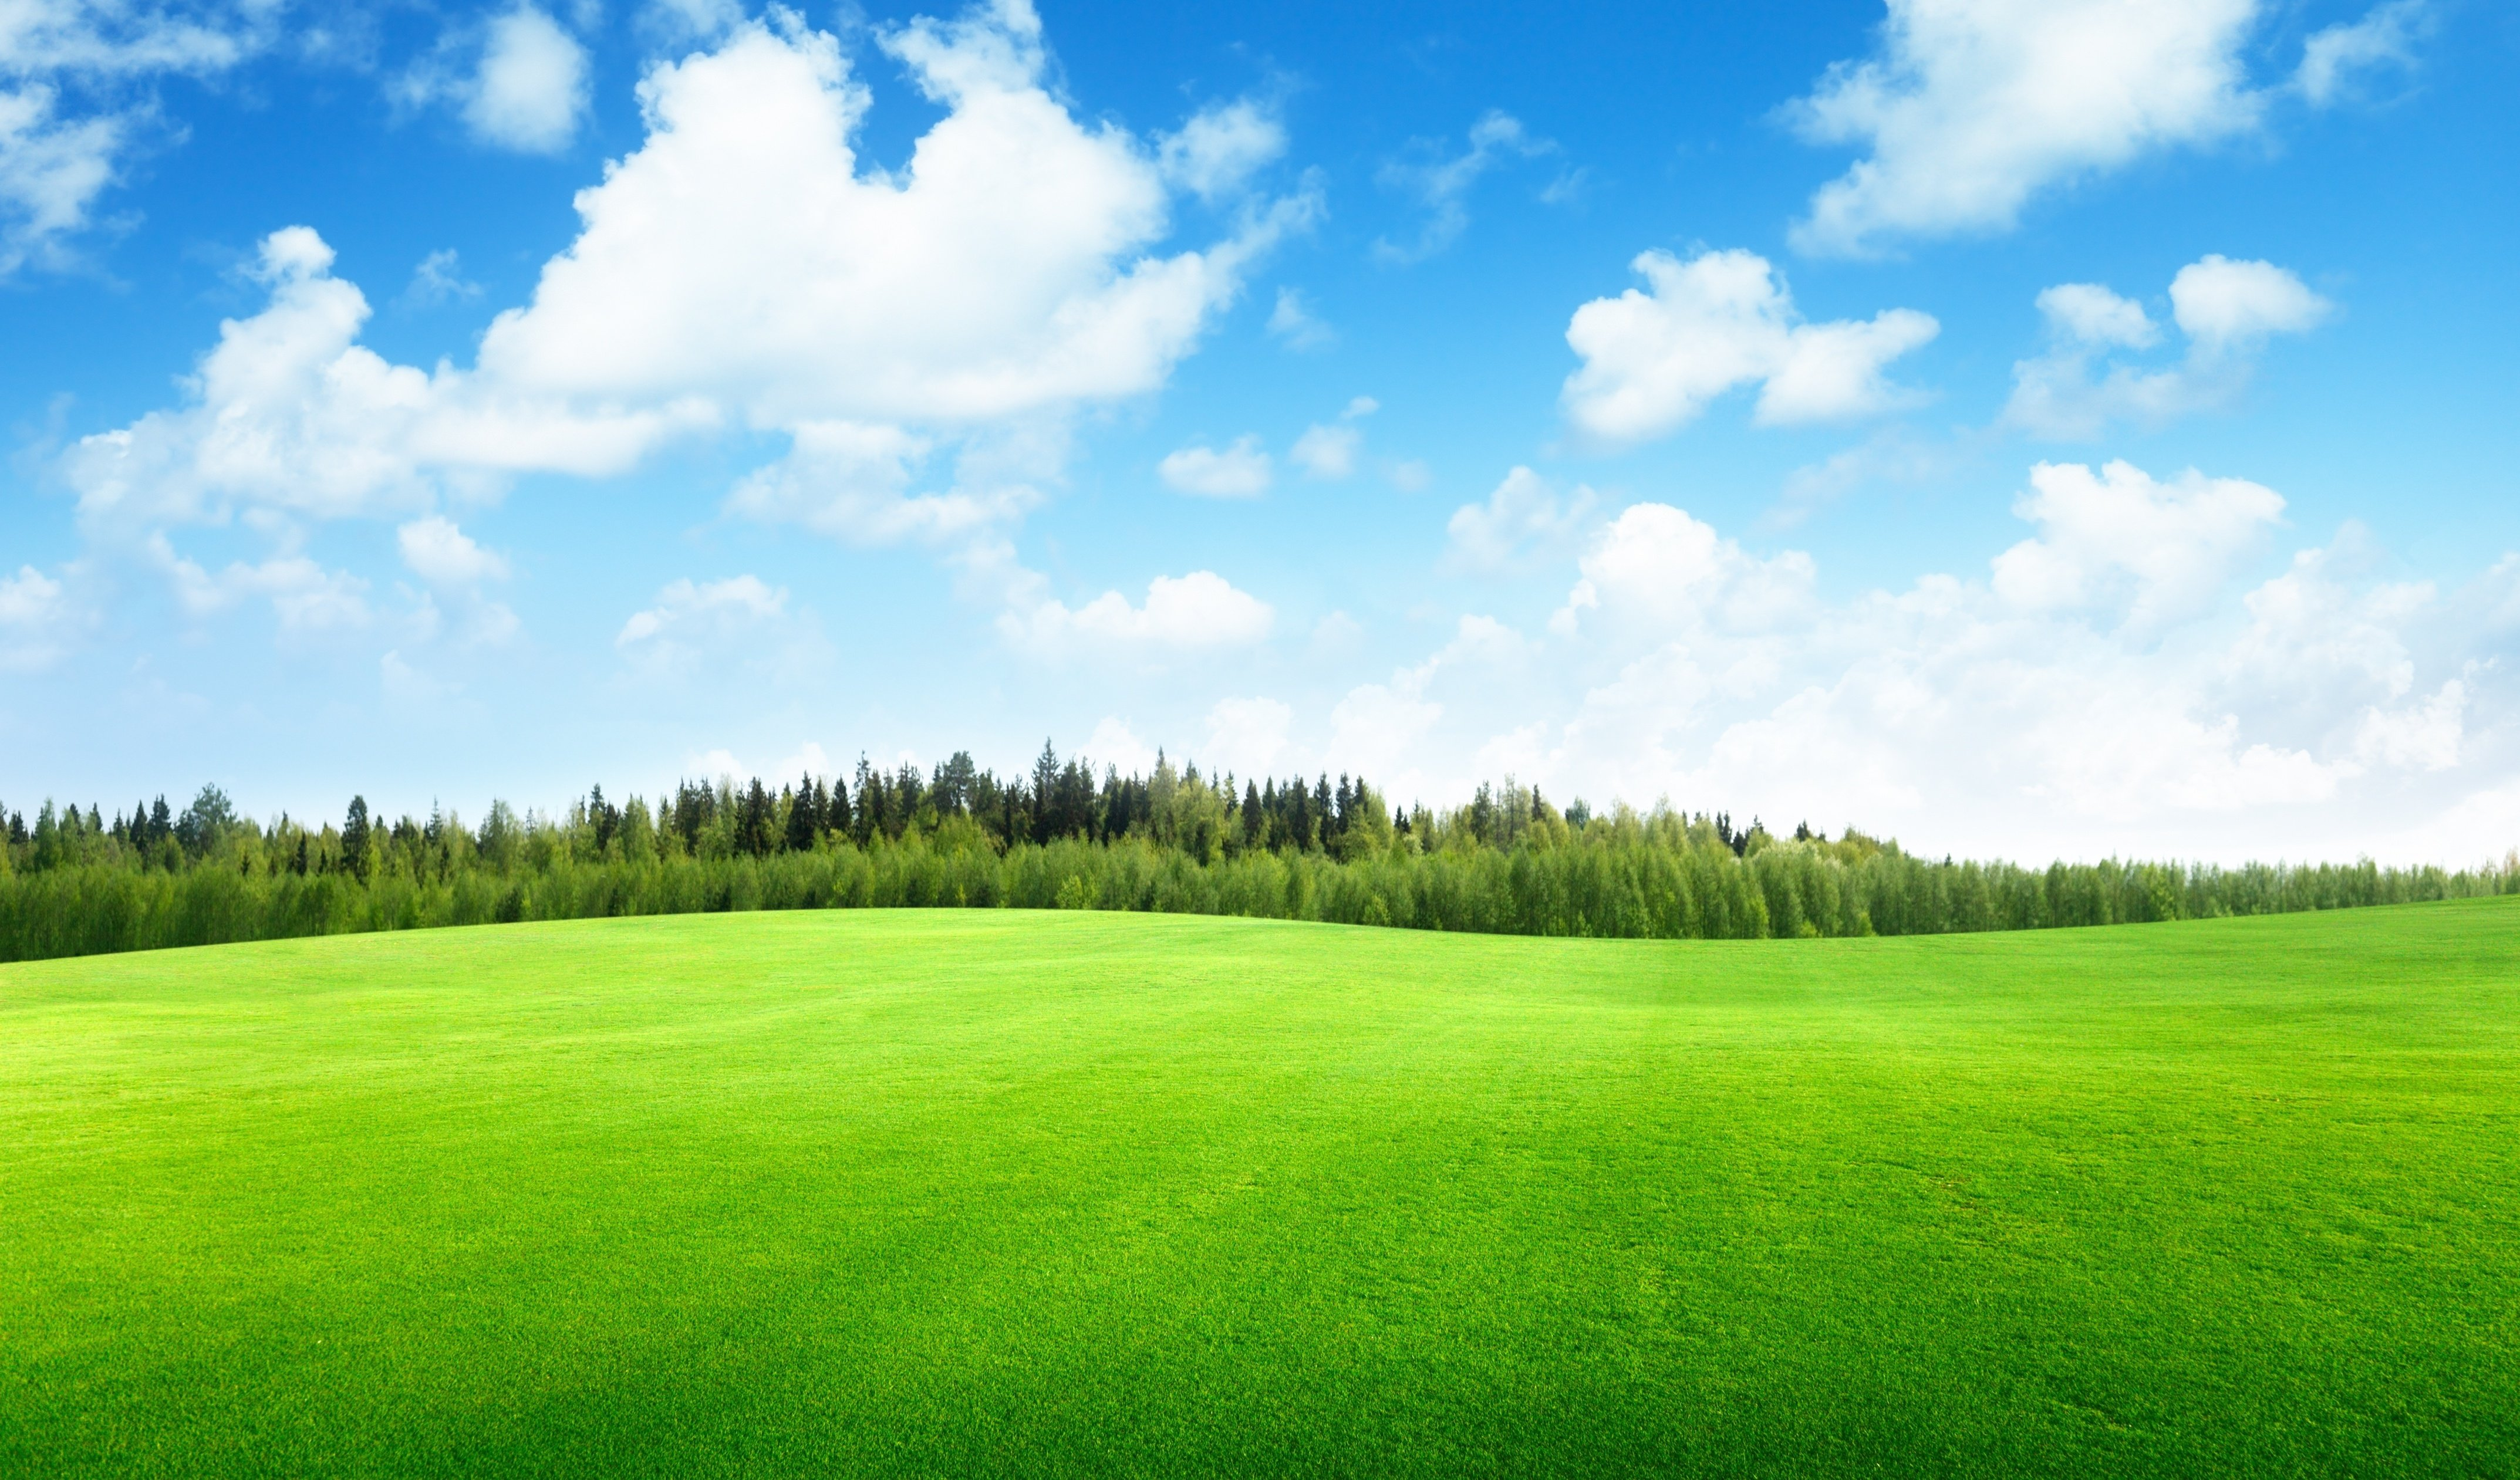 Clouds trees field of grass beautiful nature landscape sky for Grass landscape